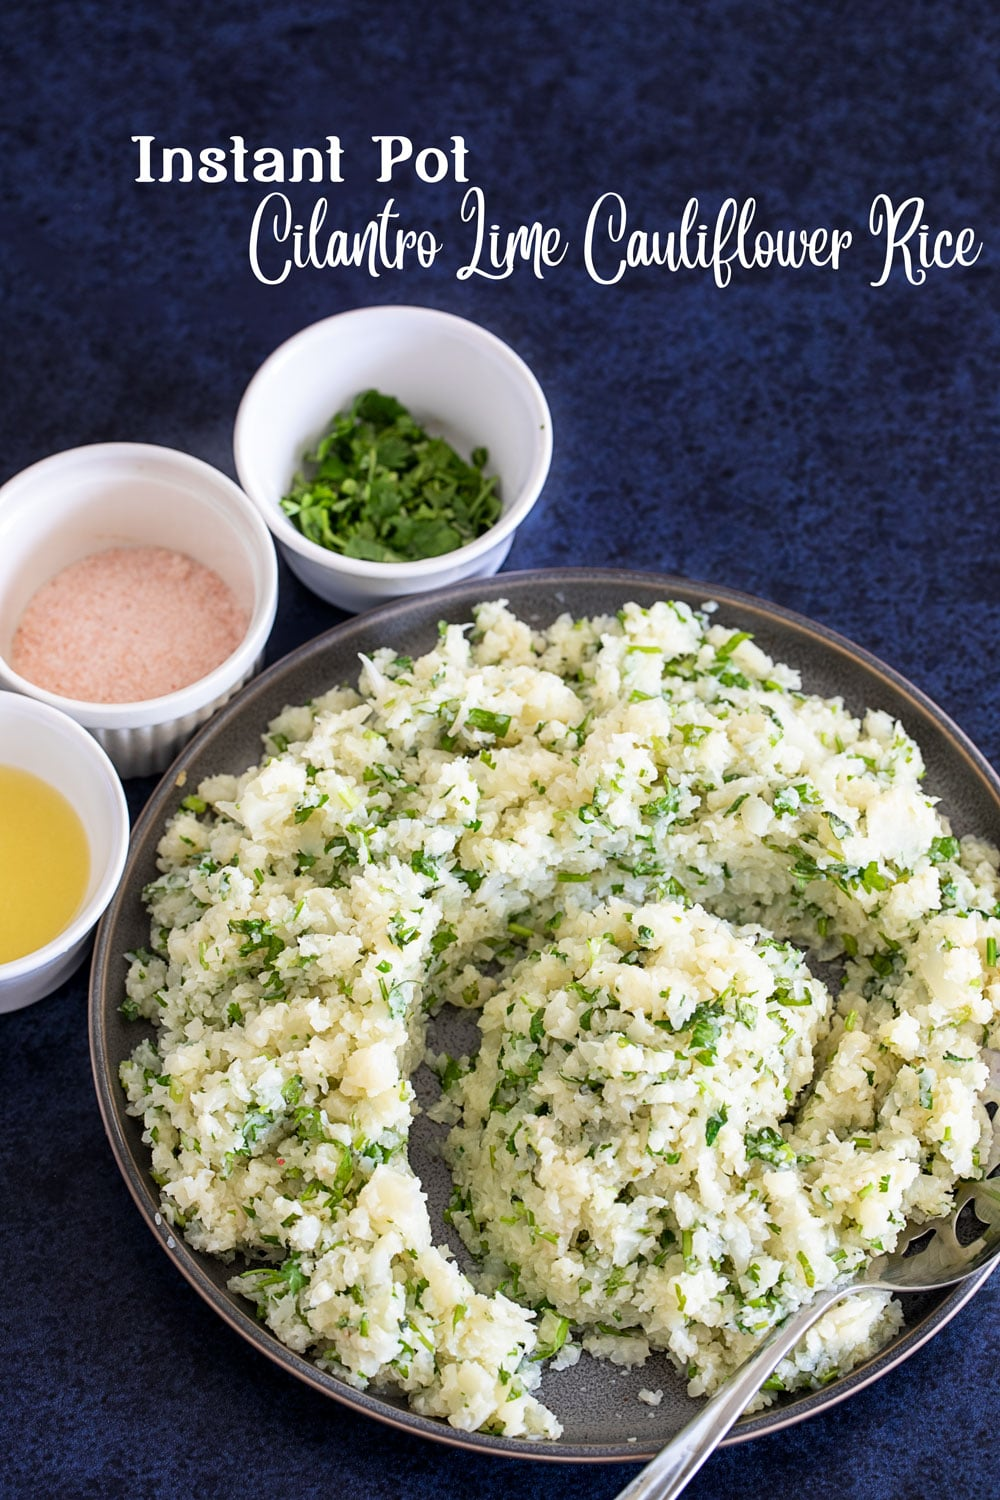 Top view of a grey plate filled with the cauliflower rice arranged in a somewhat spiral design with a side of 3 ramekins